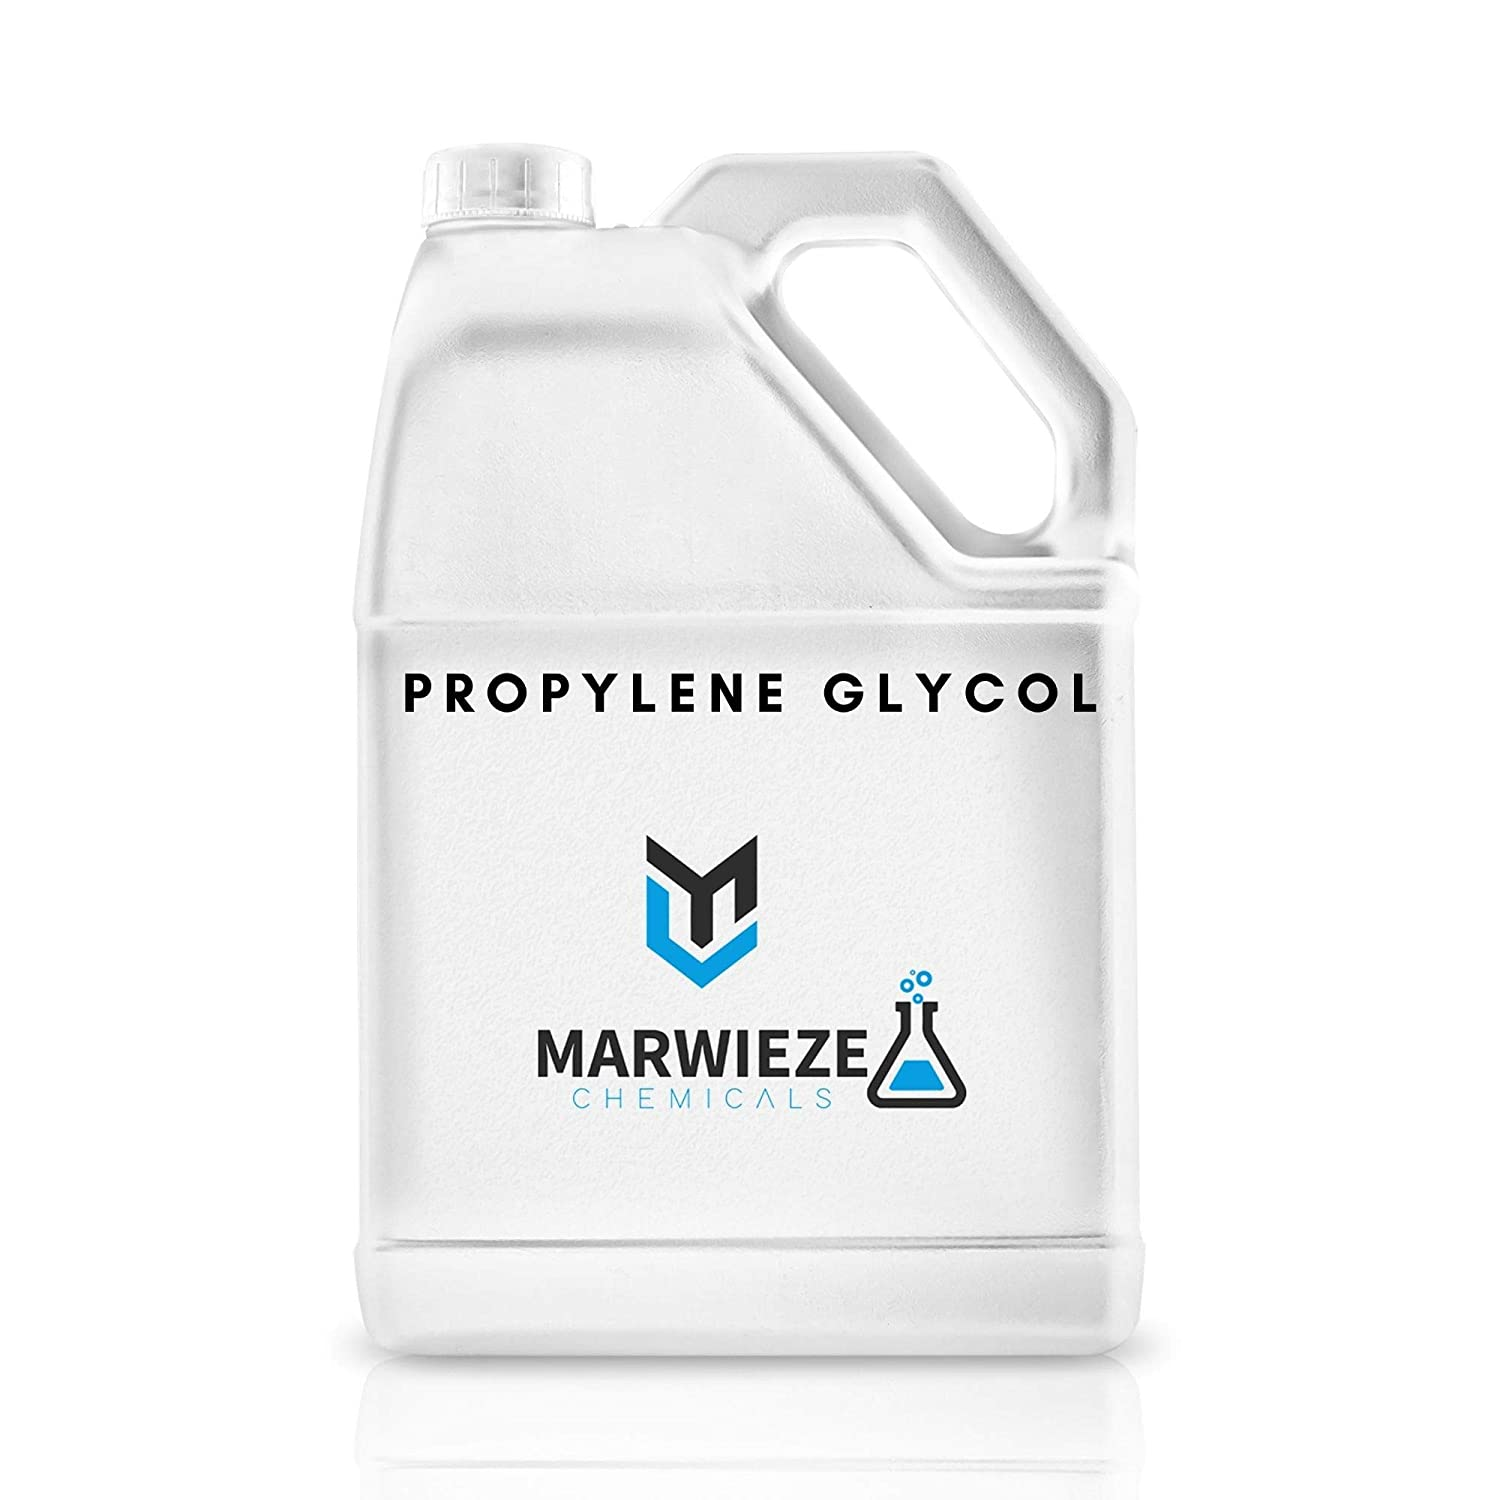 Propylene Glycol – High-Purity Propylene Glycol – Premium Food-Grade Humectant and Solvent – Suitable for Soaps, Lotions, Homemade Beauty Products – Anti-Freeze Kosher (1 Gallon)